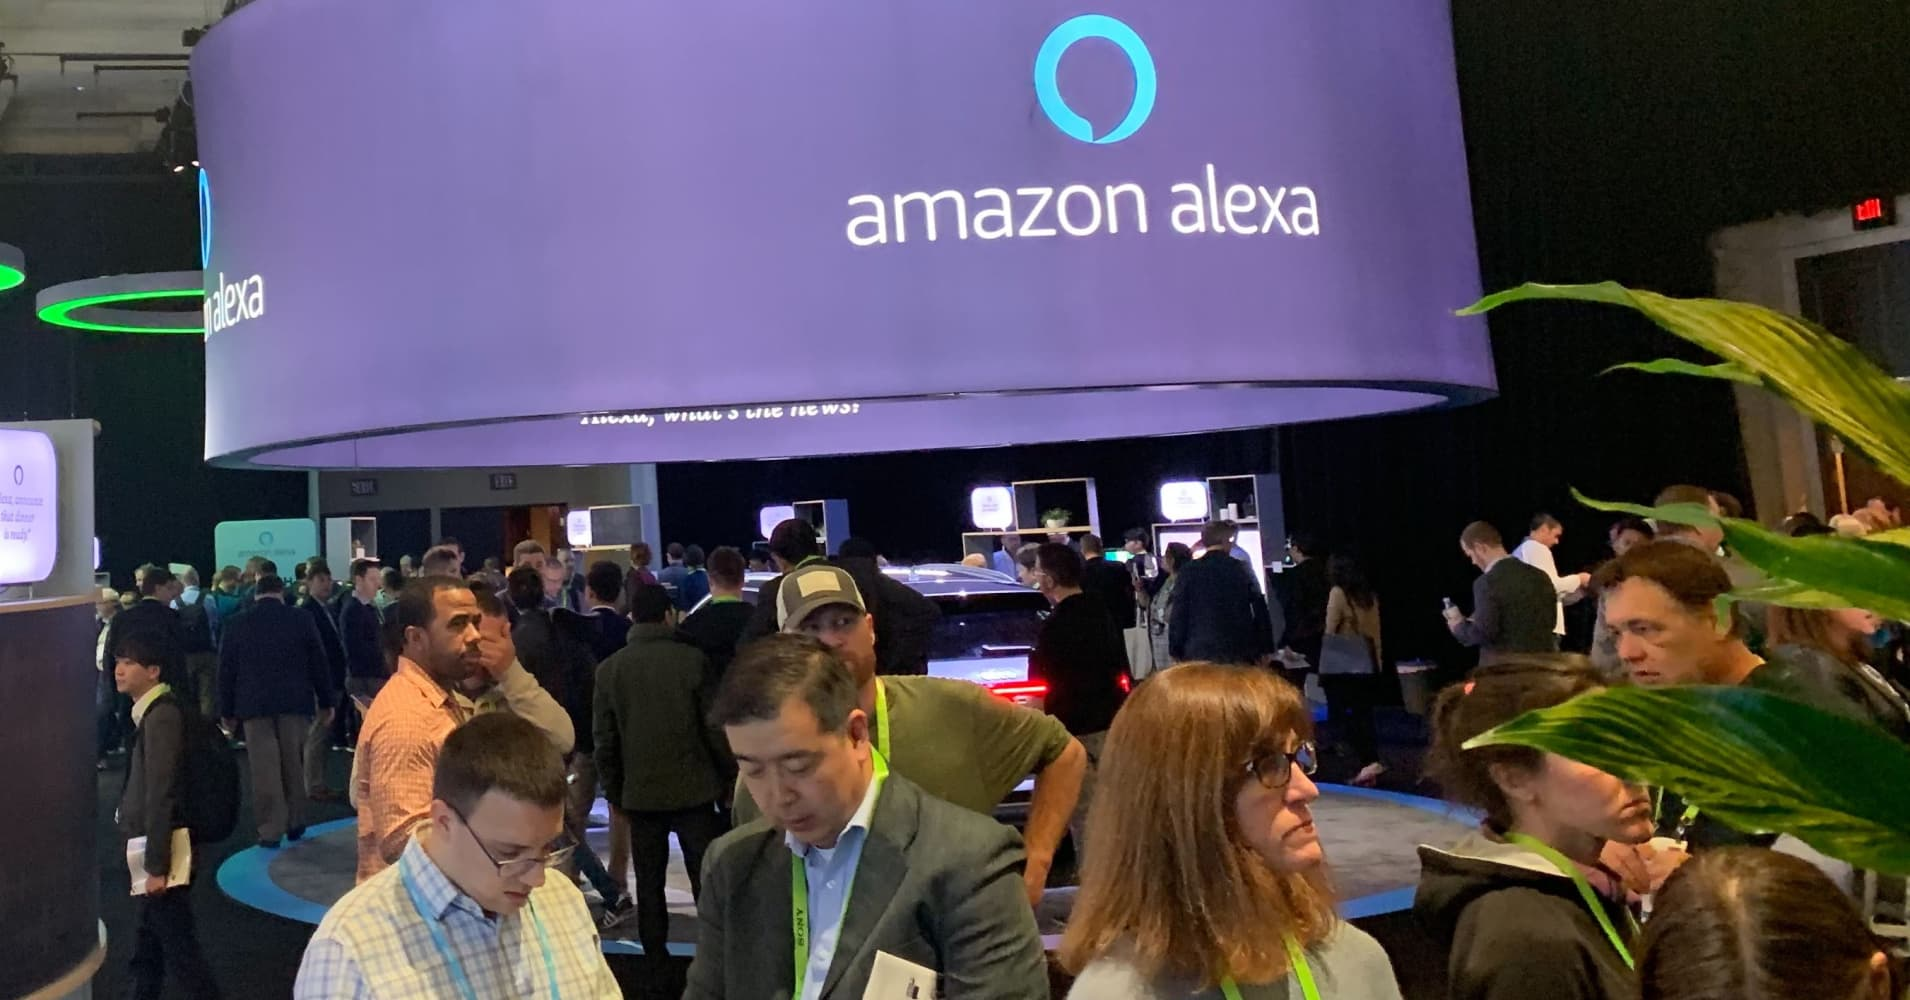 Amazon and Google are going to be in every aspect of your life whether you want them to or not